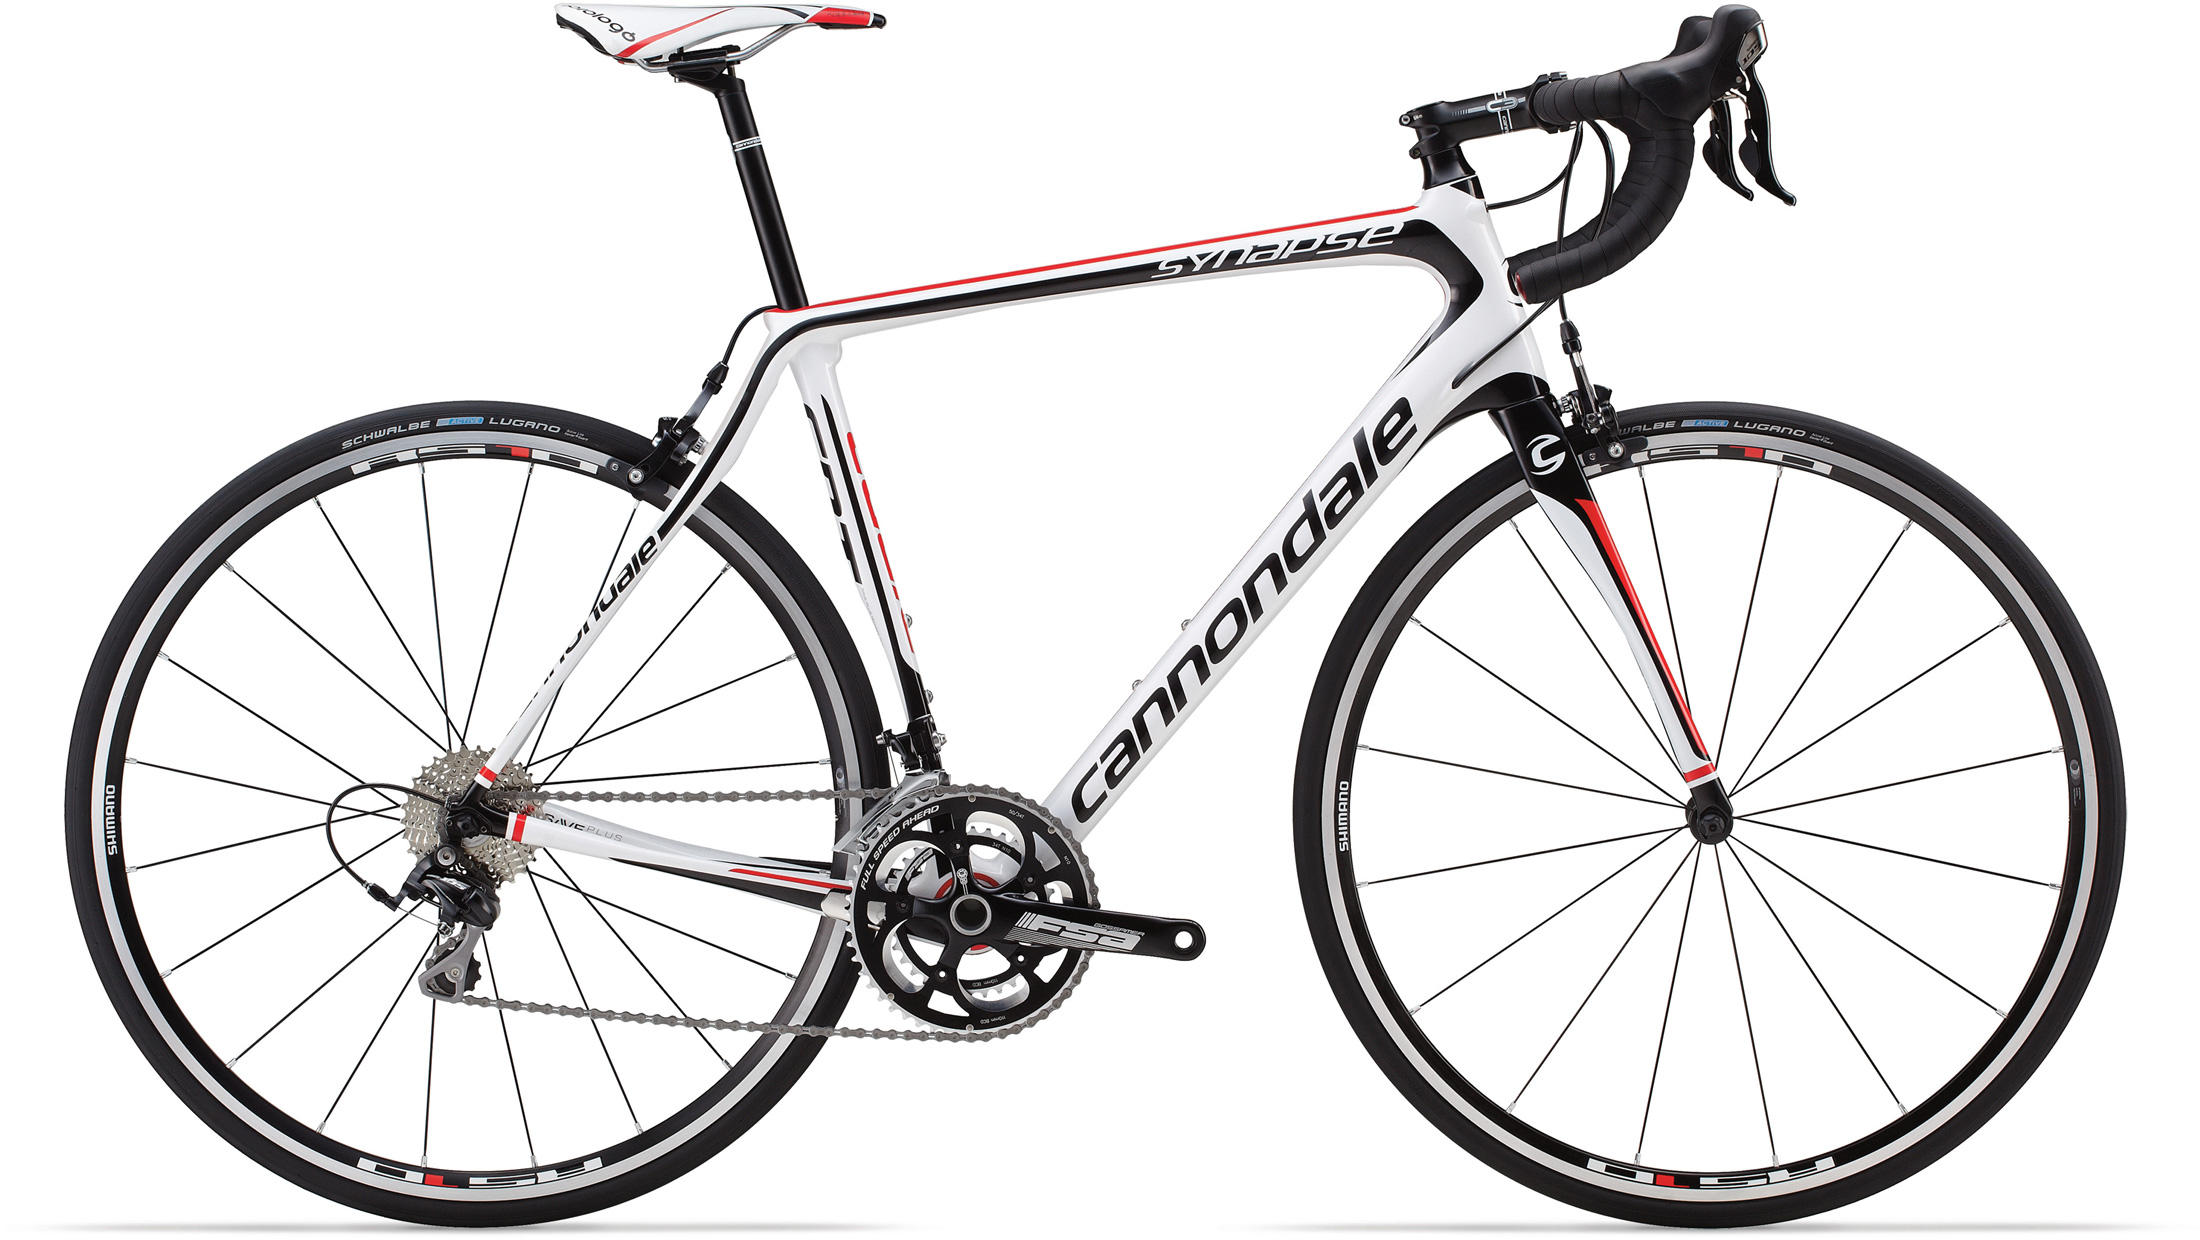 ca5bf92dccc Cannondale Synapse Carbon 5 105 C - Grand Rapids Bicycle Co. - Grand ...